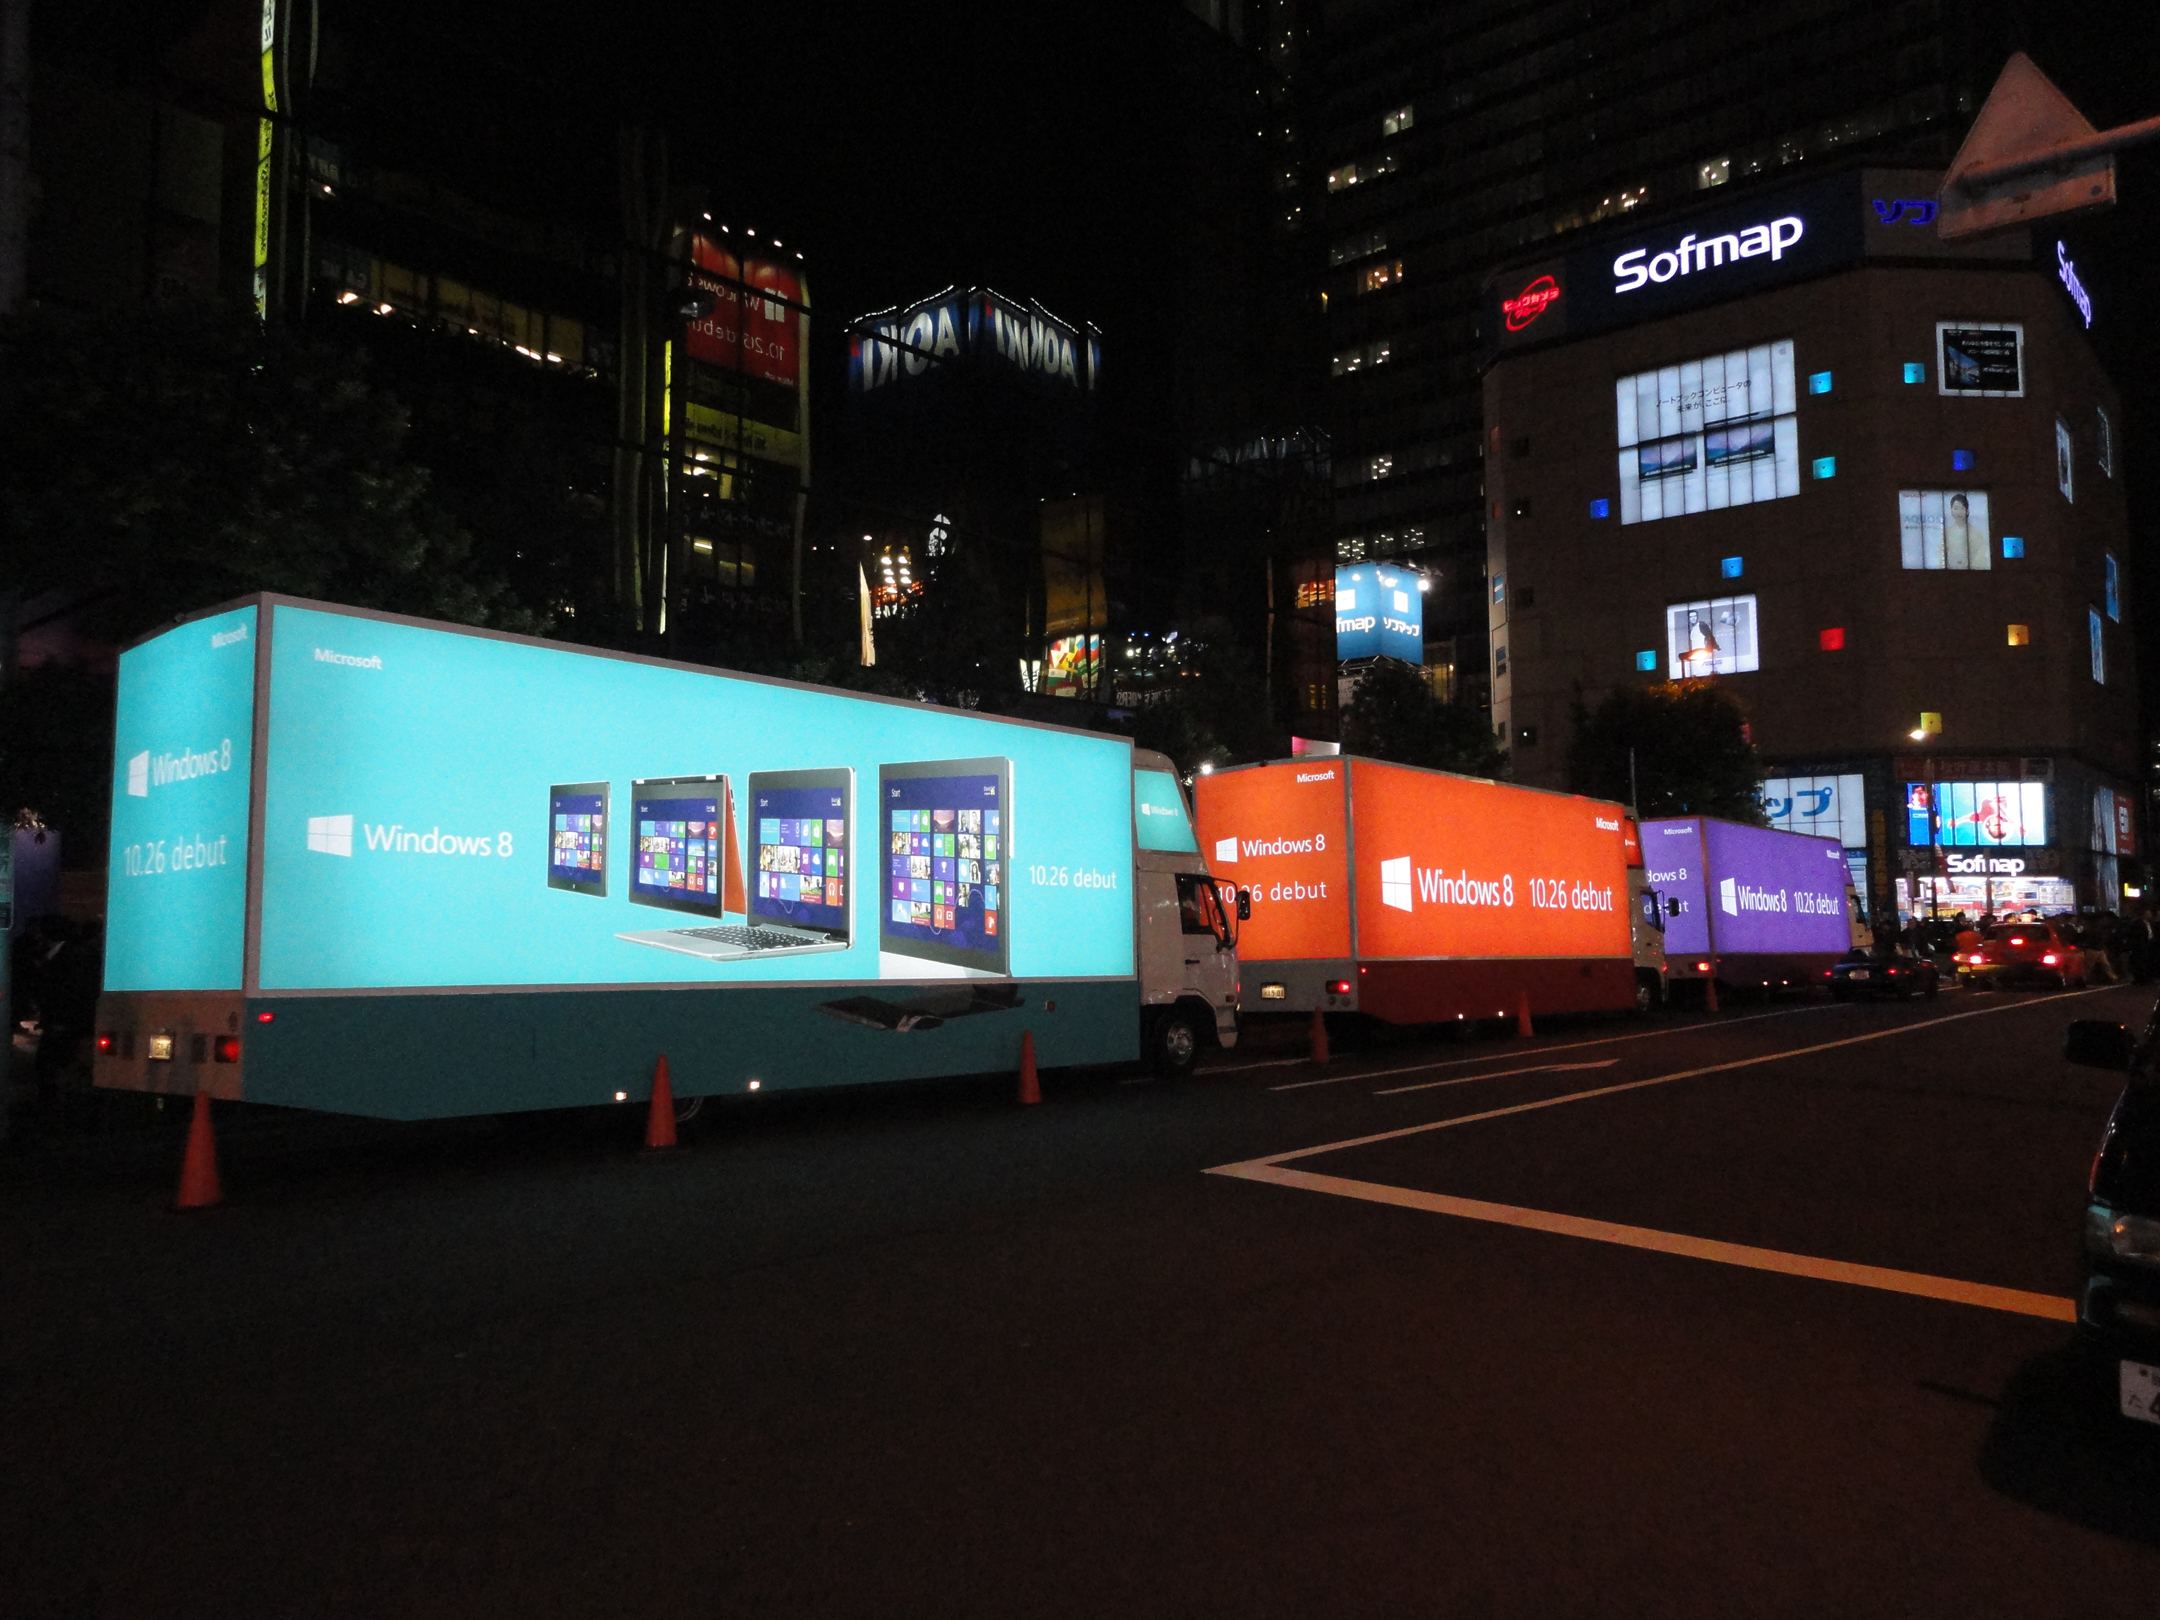 File:Windows 8 Launch Event In Akihabara, Tokyo  Microsoft Articles Of Incorporation